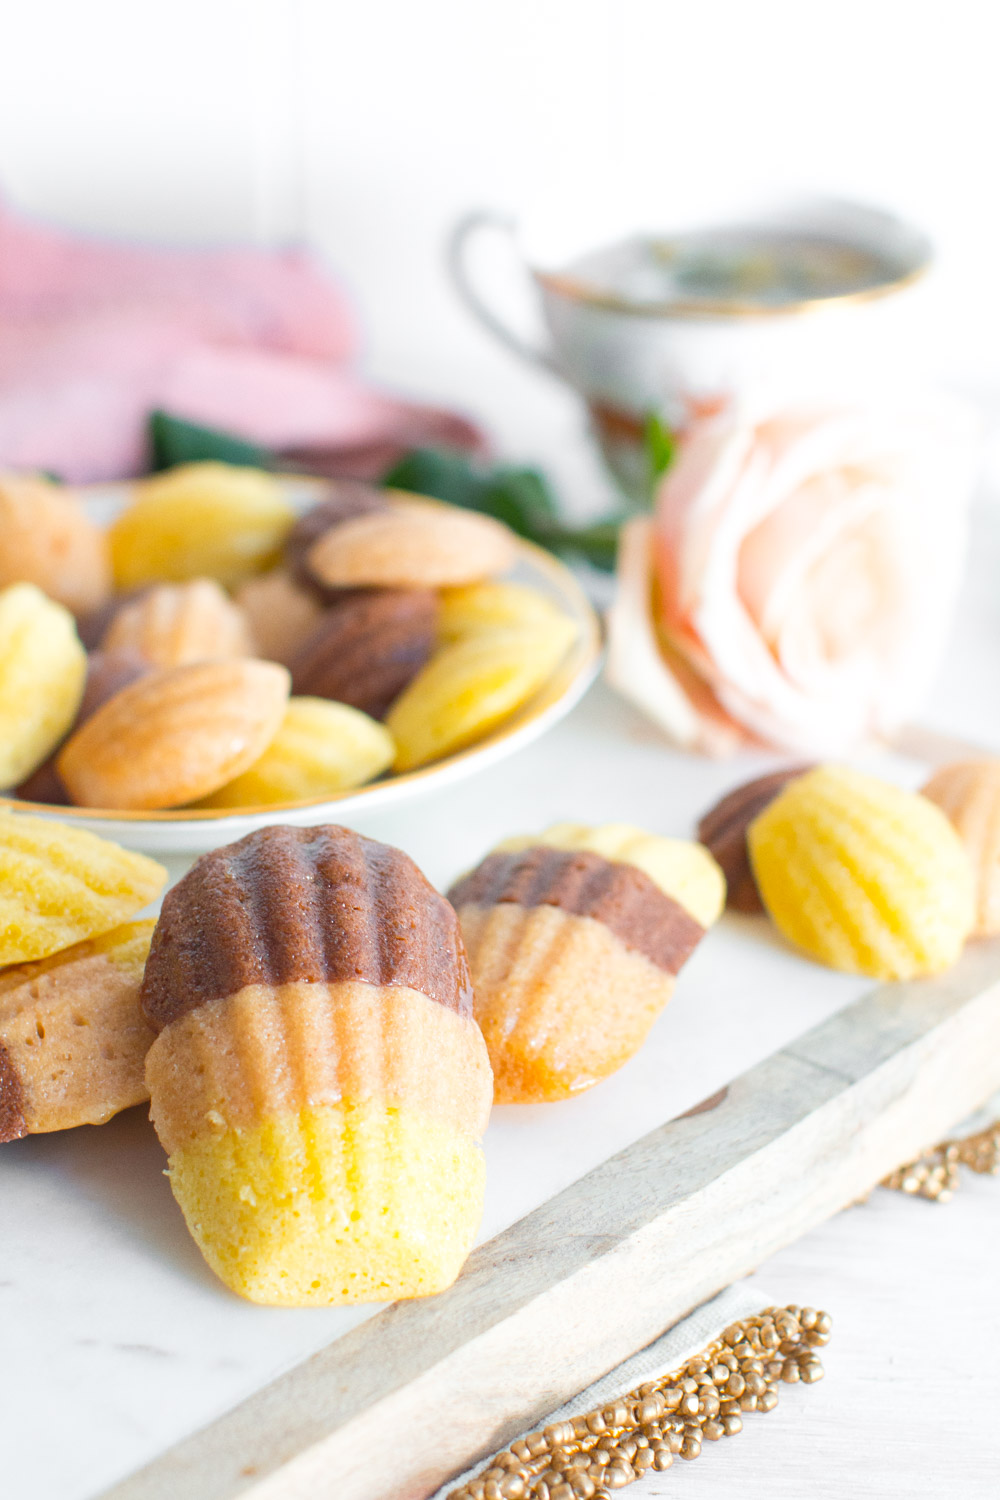 Chocolate, Strawberry and Vanilla Neapolitan Madeleines. Doesn't get much sweeter than this.